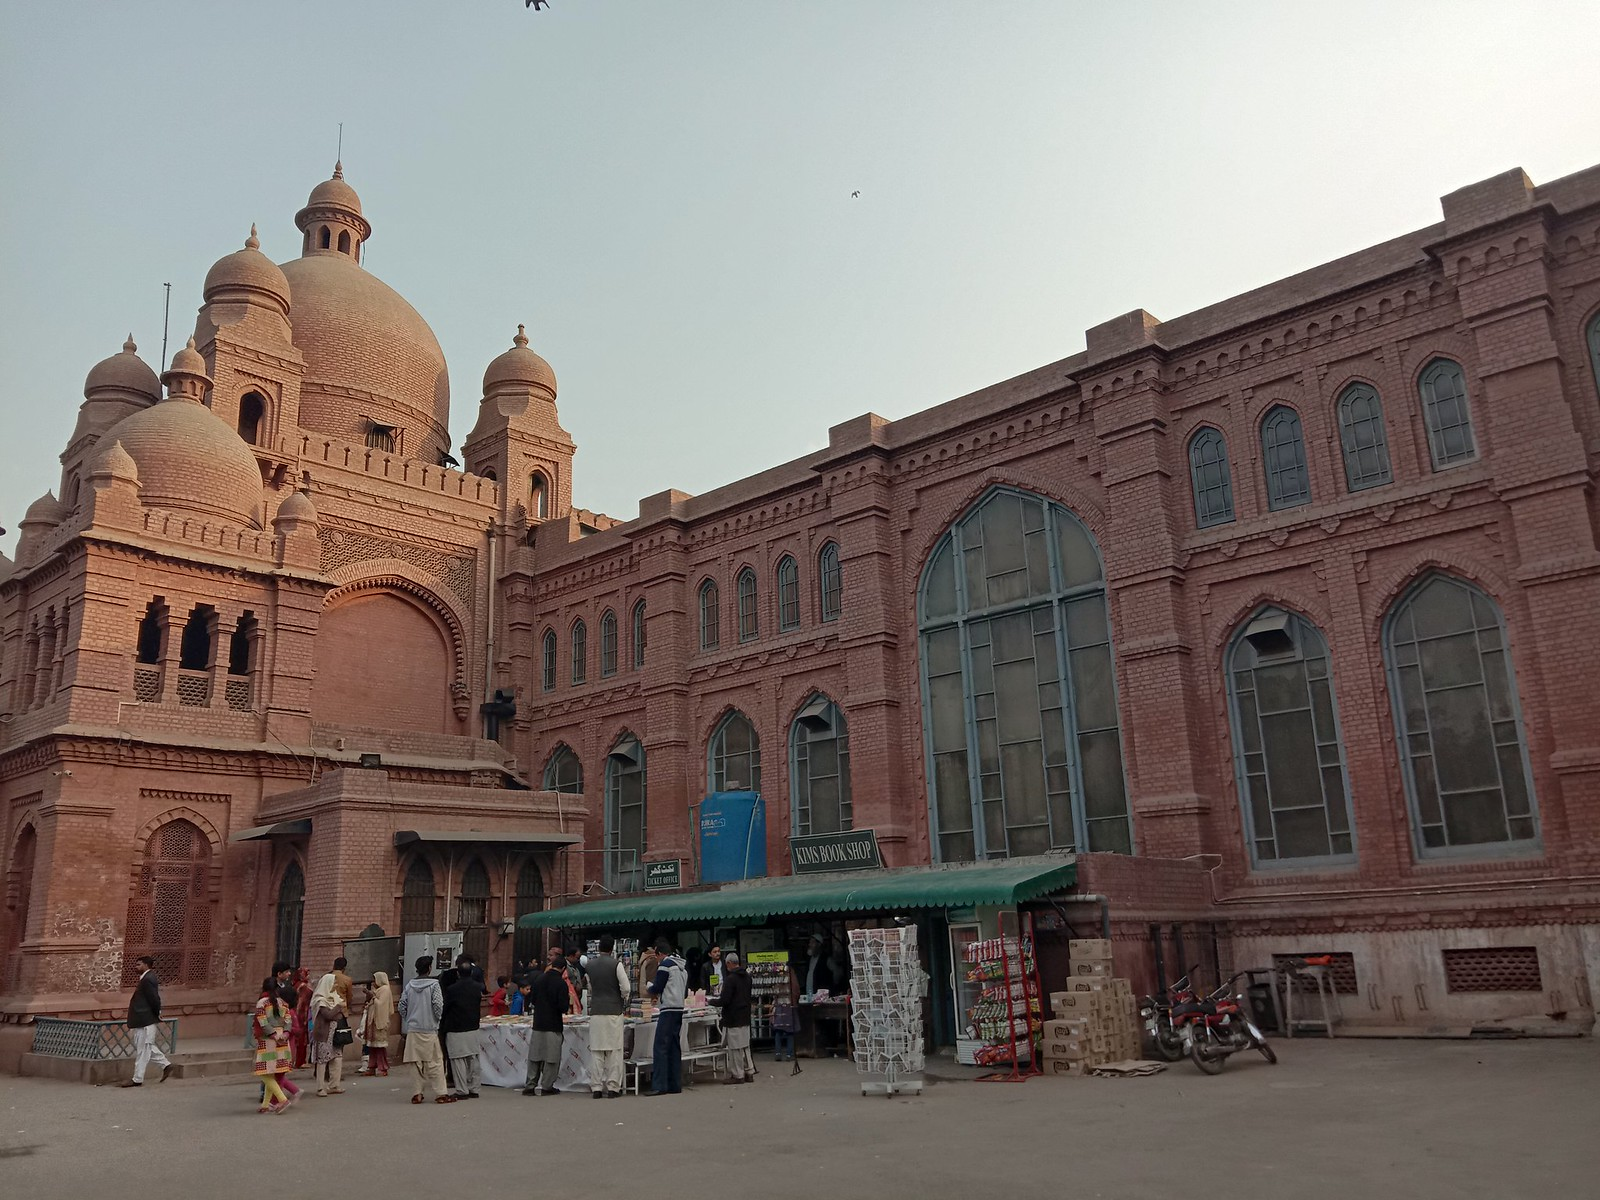 Lahore Museum Picture with HDR mode on Vivo Y91